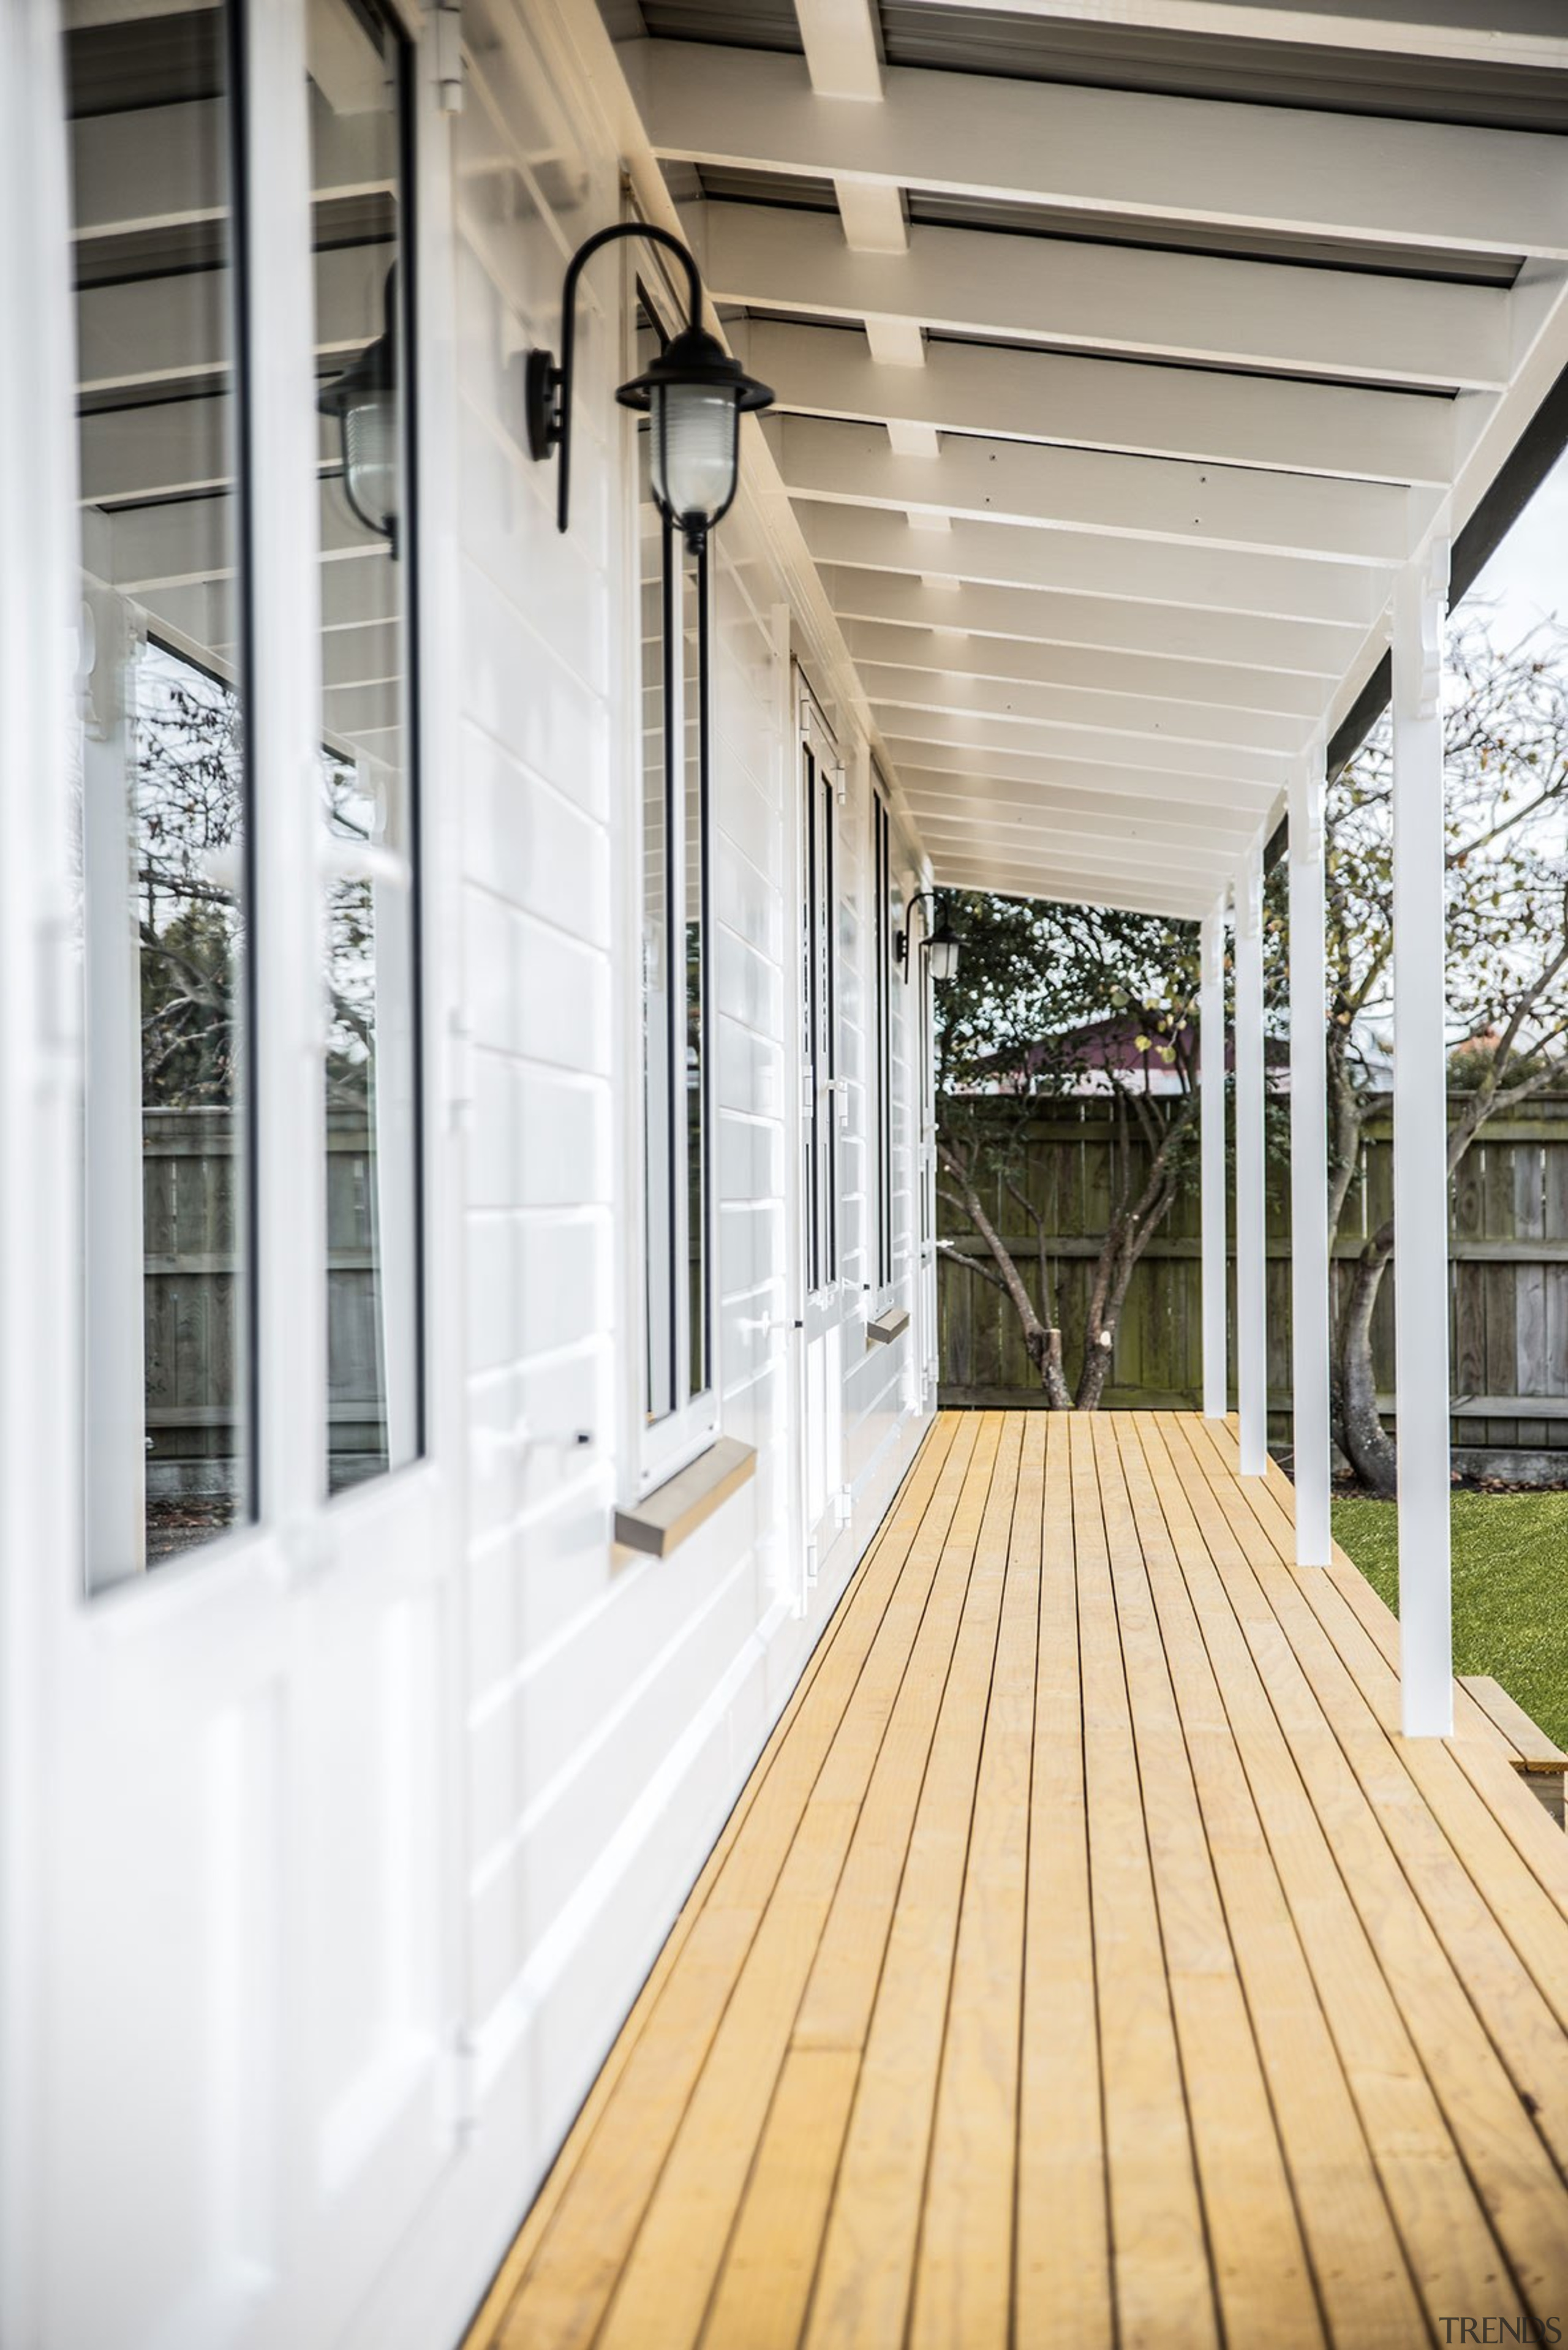 Finish A Porch With Niagara Laminated Timber Posts daylighting, deck, floor, flooring, house, outdoor structure, porch, siding, structure, window, wood, white, gray